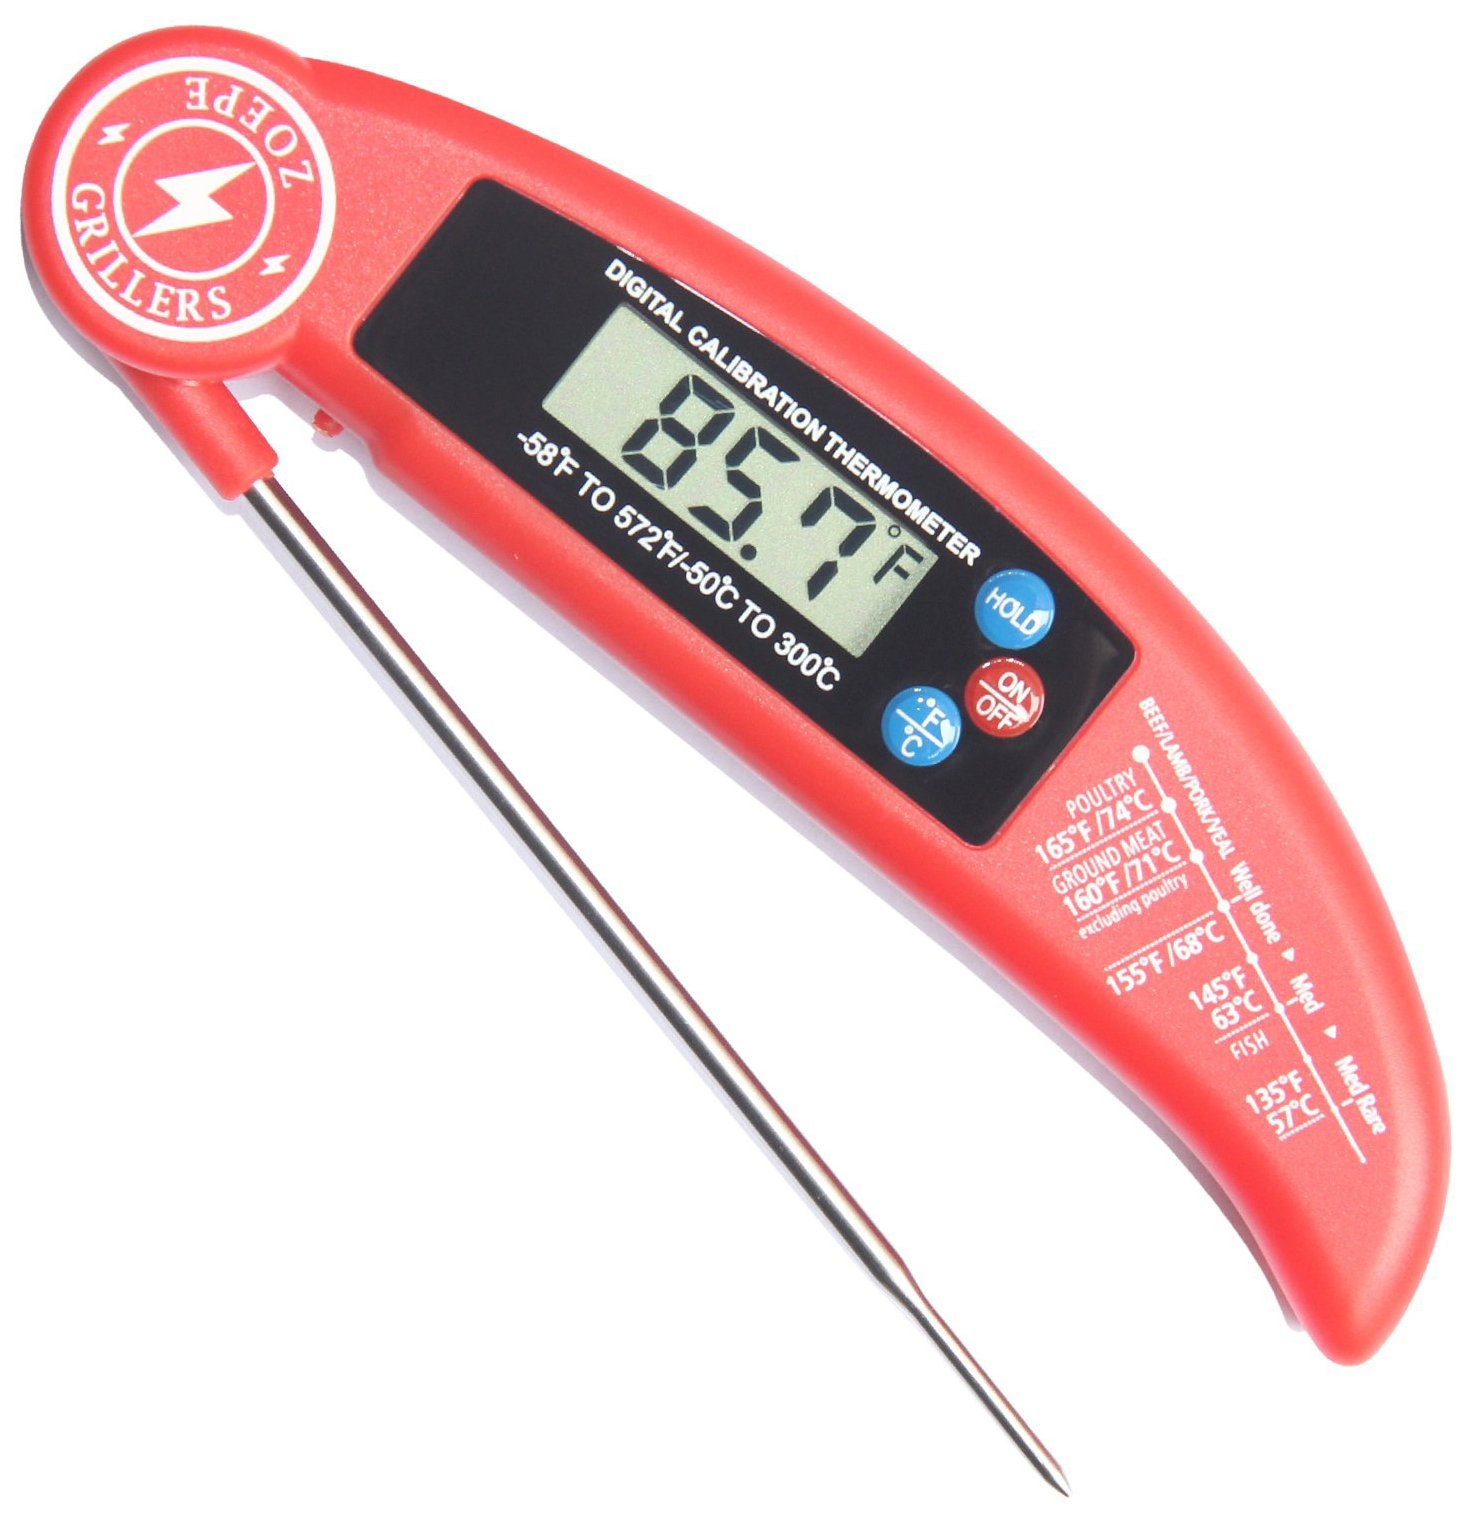 ZOEPE Instant Read Meat Thermometer for Grill and Cooking. UPGRADED MODEL NOW WITH MAGNET AND CALIBRATION FEATURE. Best Ultra Fast Digital Kitchen Probe. Includes Internal BBQ Meat Temperature Guide